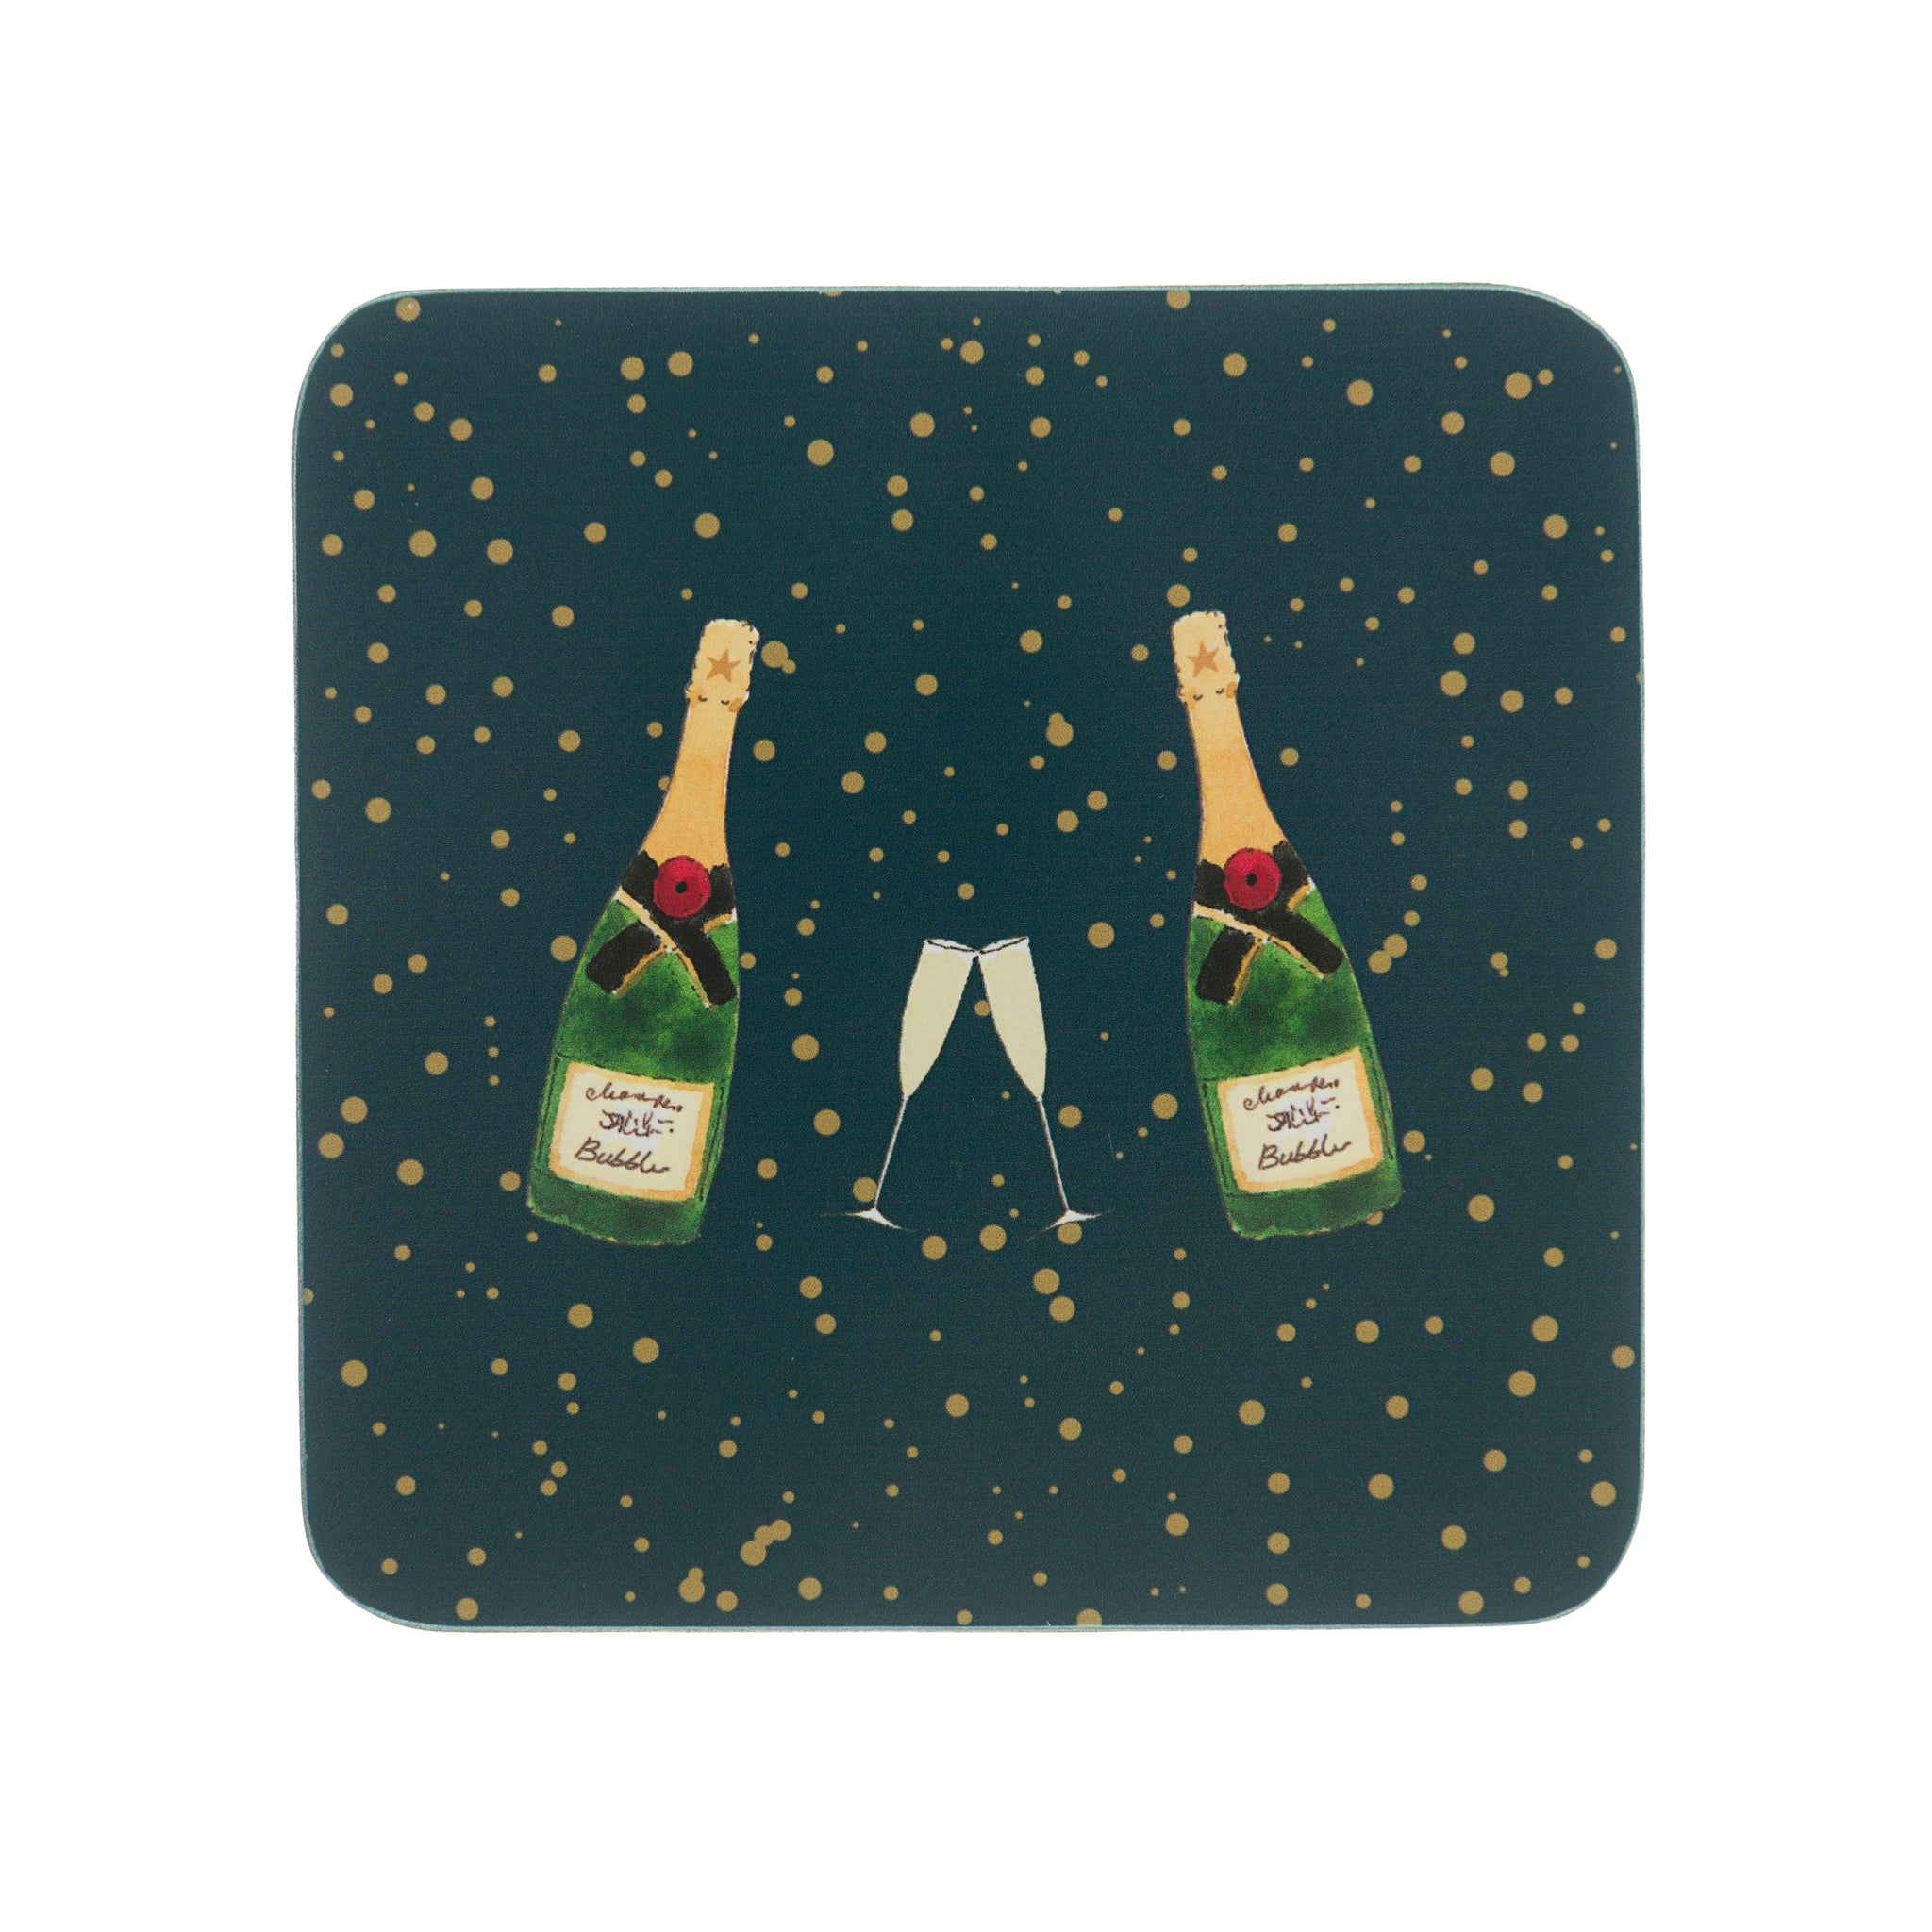 Bubbles & Fizz Coasters (Set of 4)